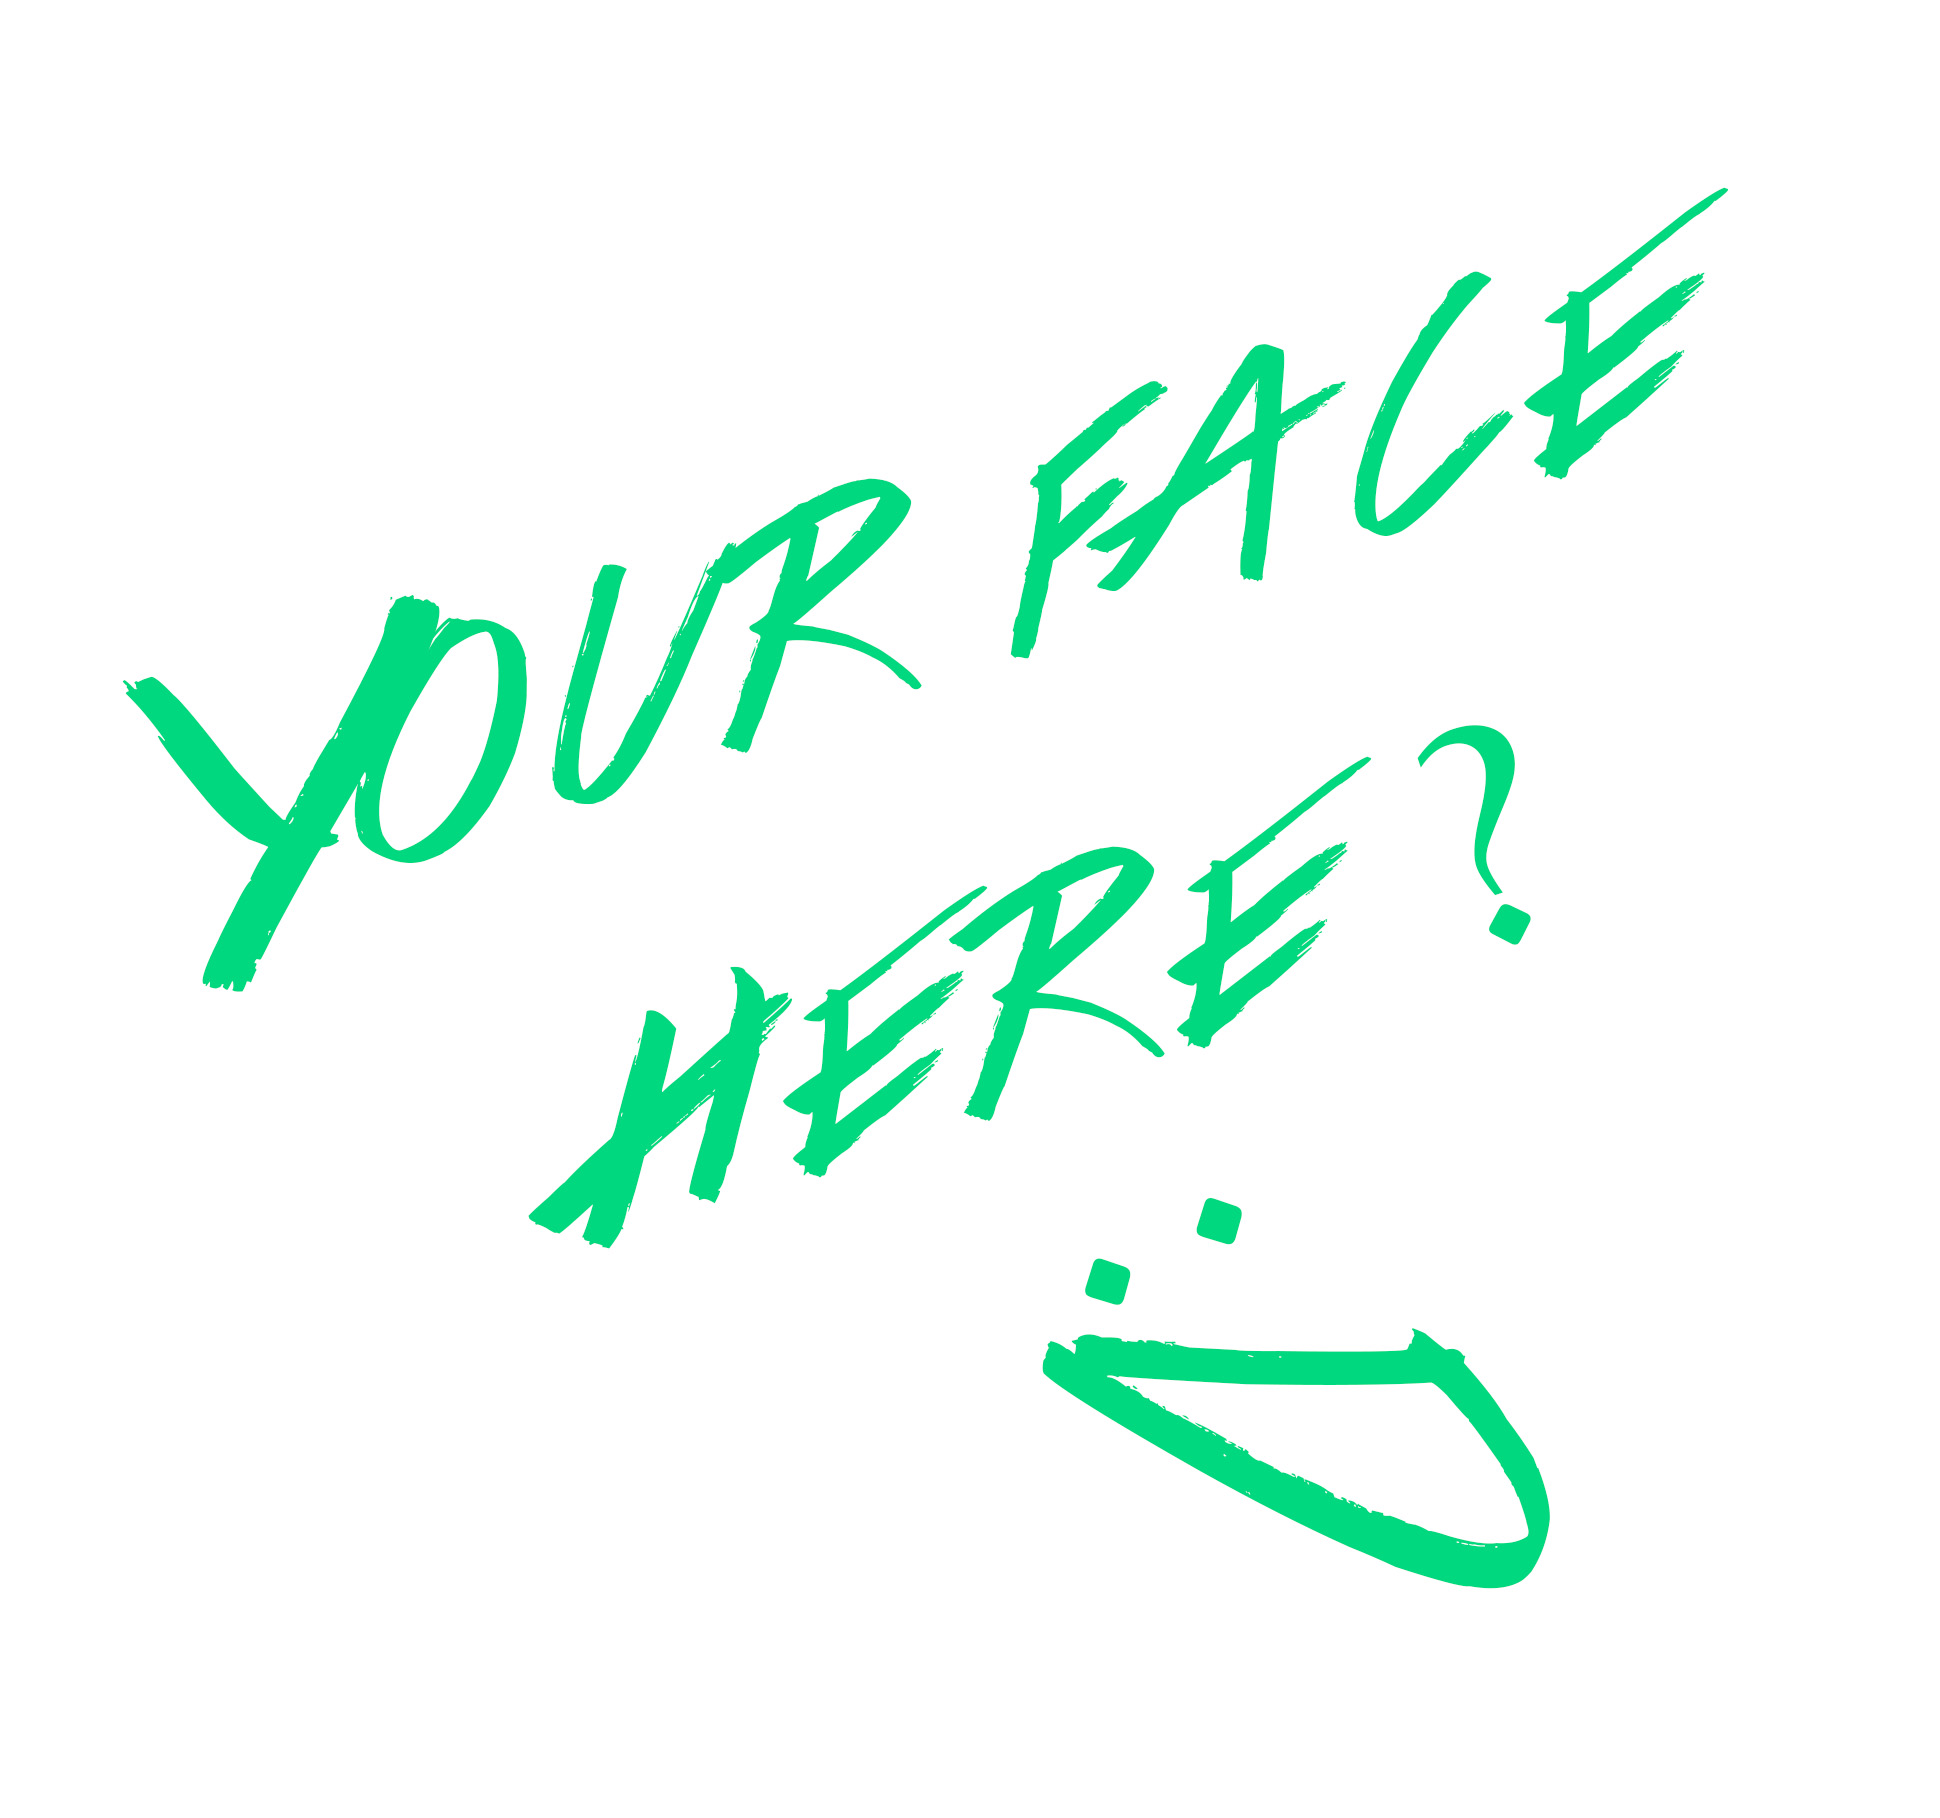 Name: Your Face